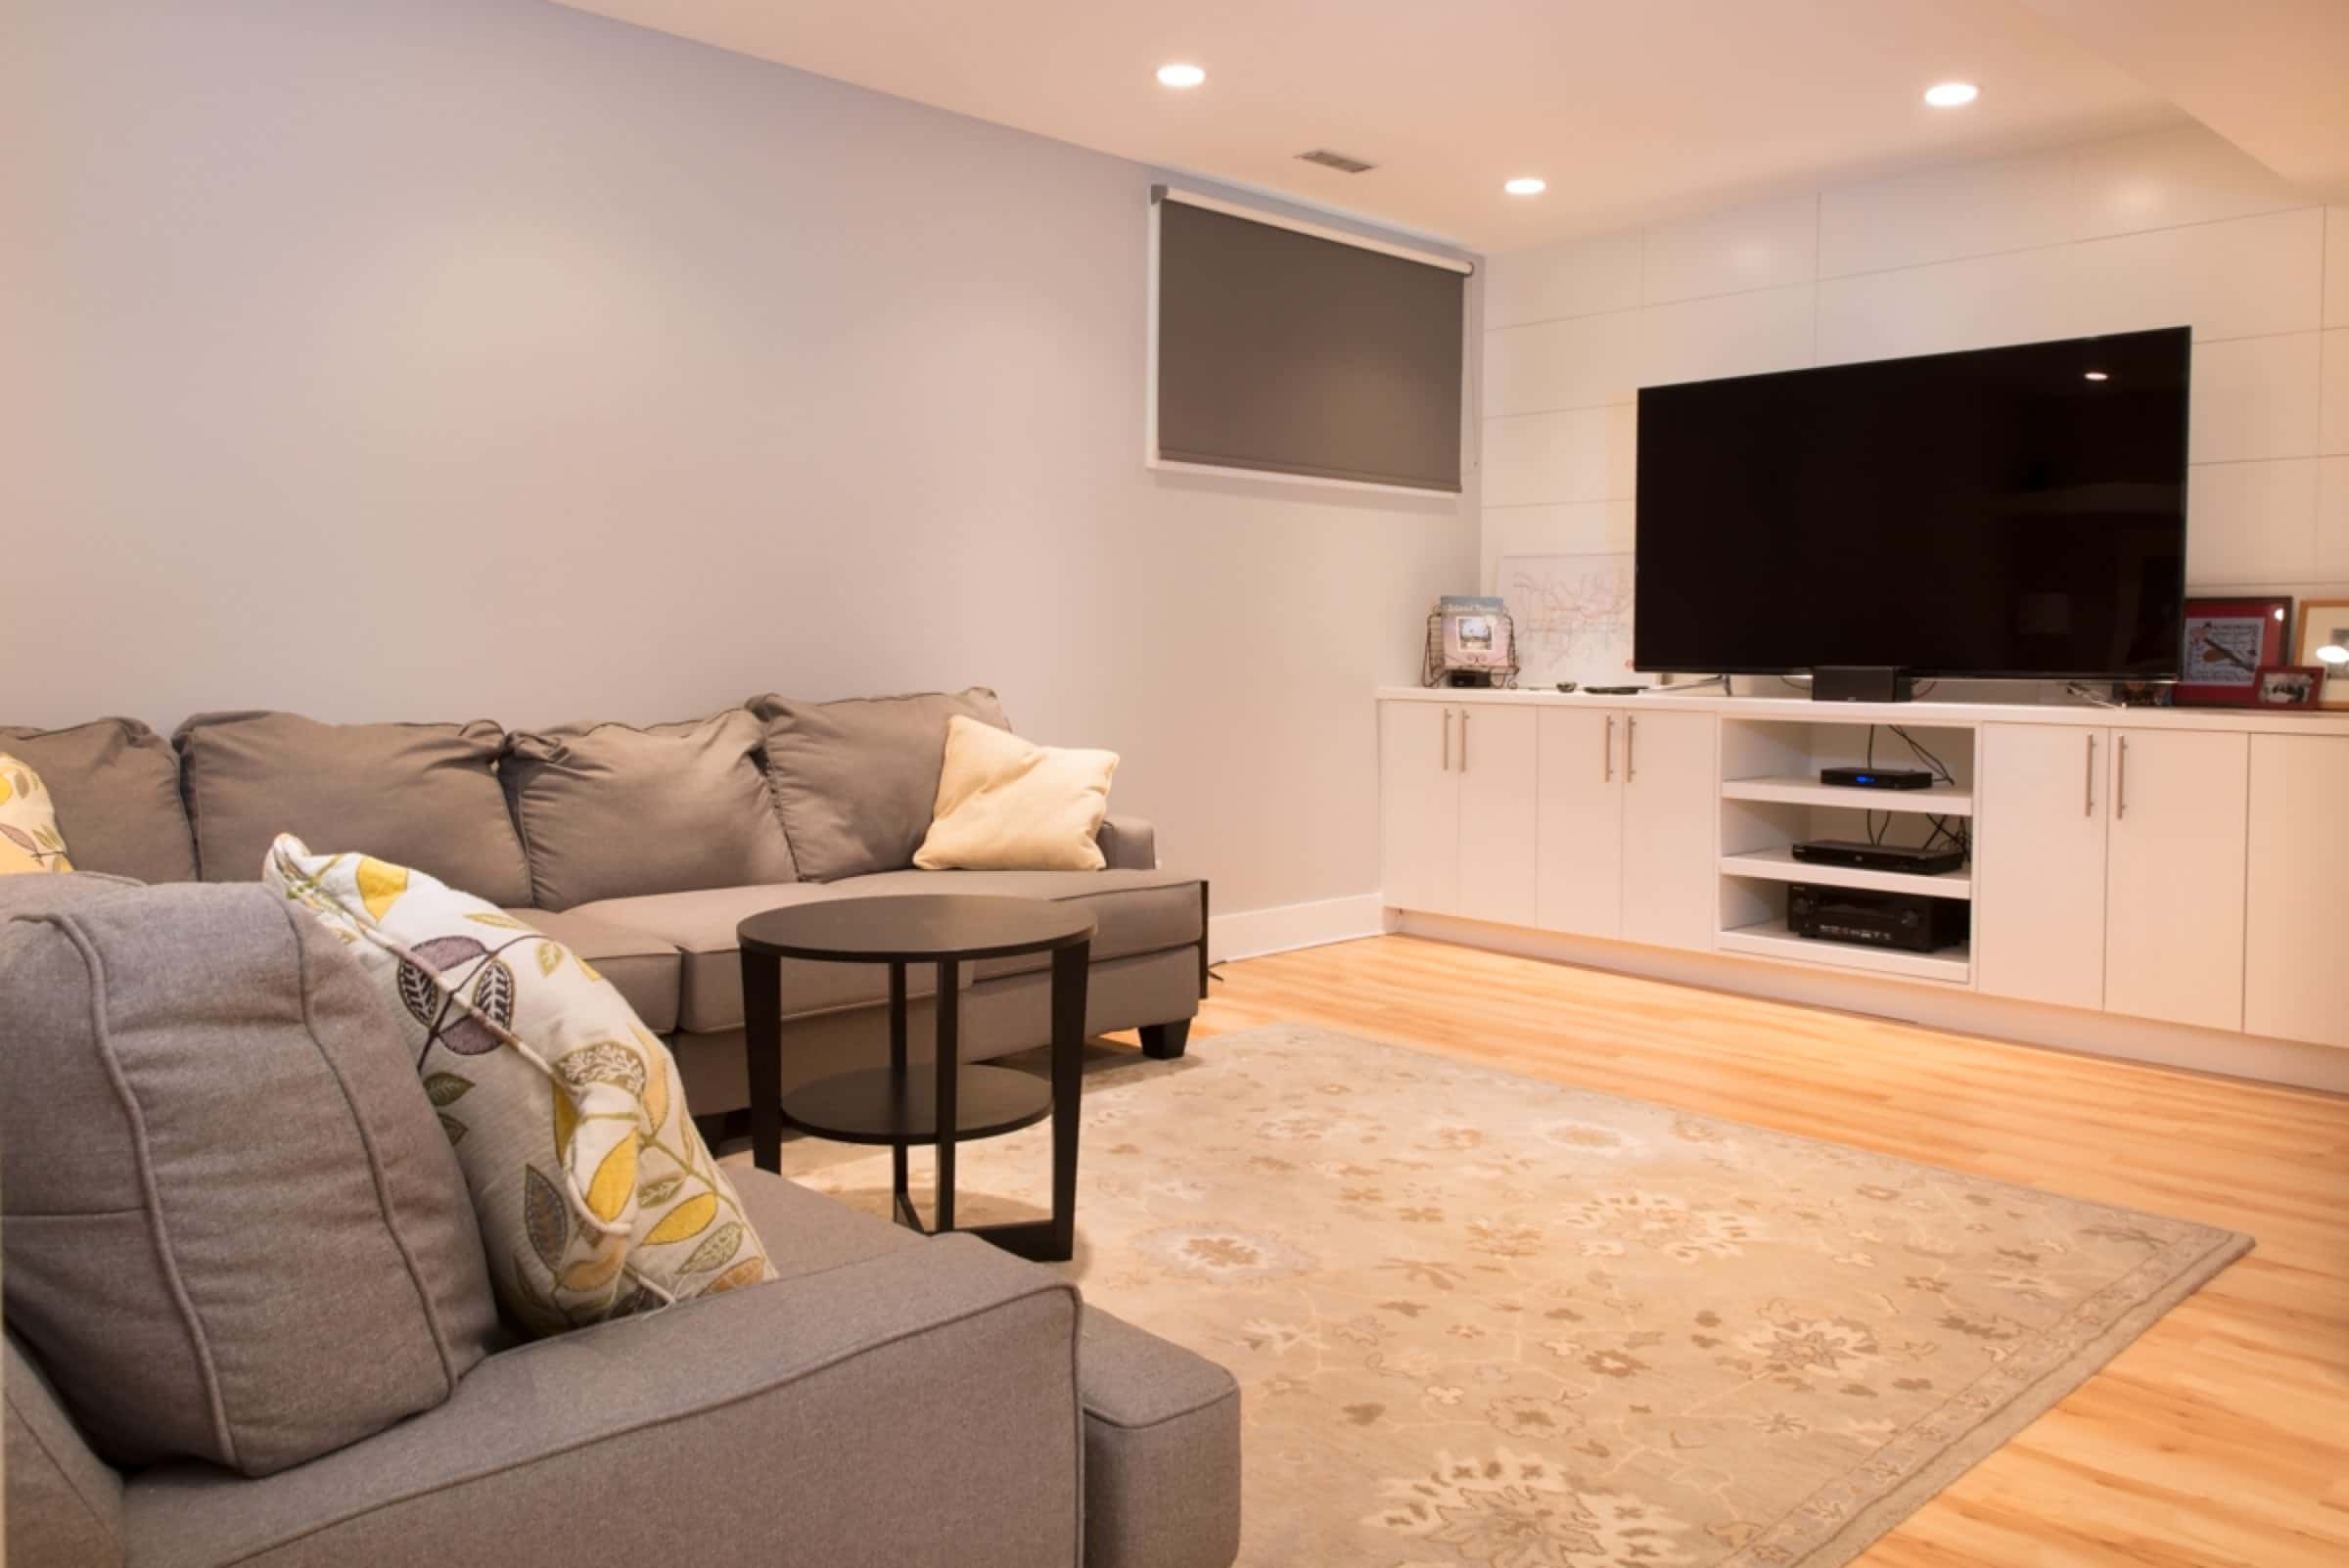 Quality basement development in calgary home renovations for Quality basement